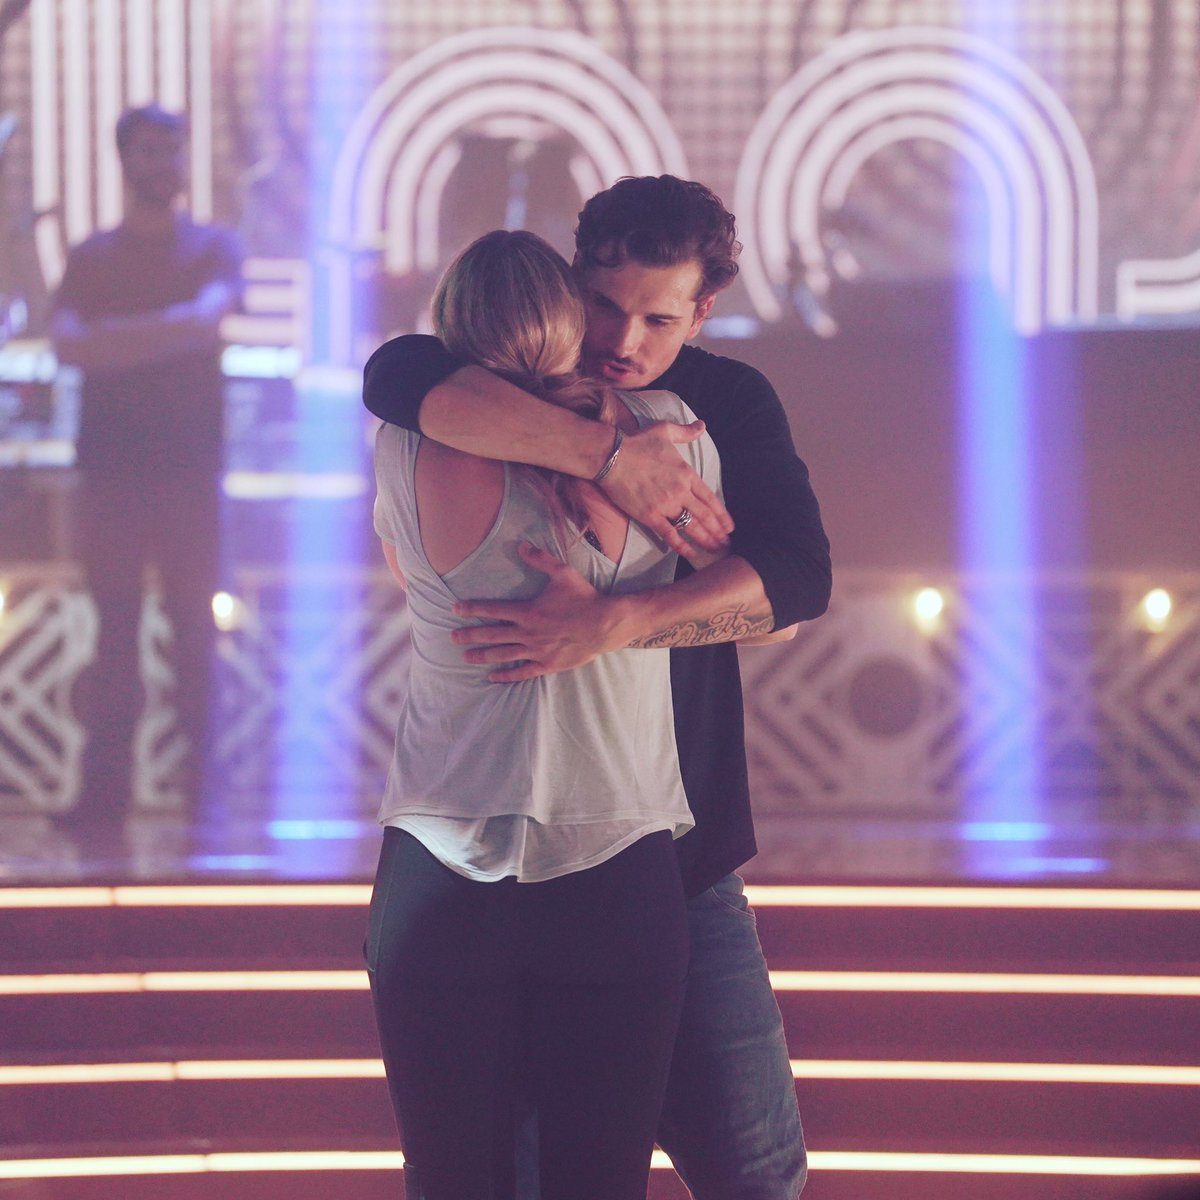 No pain. No gain. Who needs healthy ribs when you get good hugs from @Gleb_Savchenko when you need them? Lol I'm so honored to be on @dancingabc. Don't forget to tune in tonight and VOTE VOTE VOTE. Text Lauren to 21523. LET'S DO THIS.